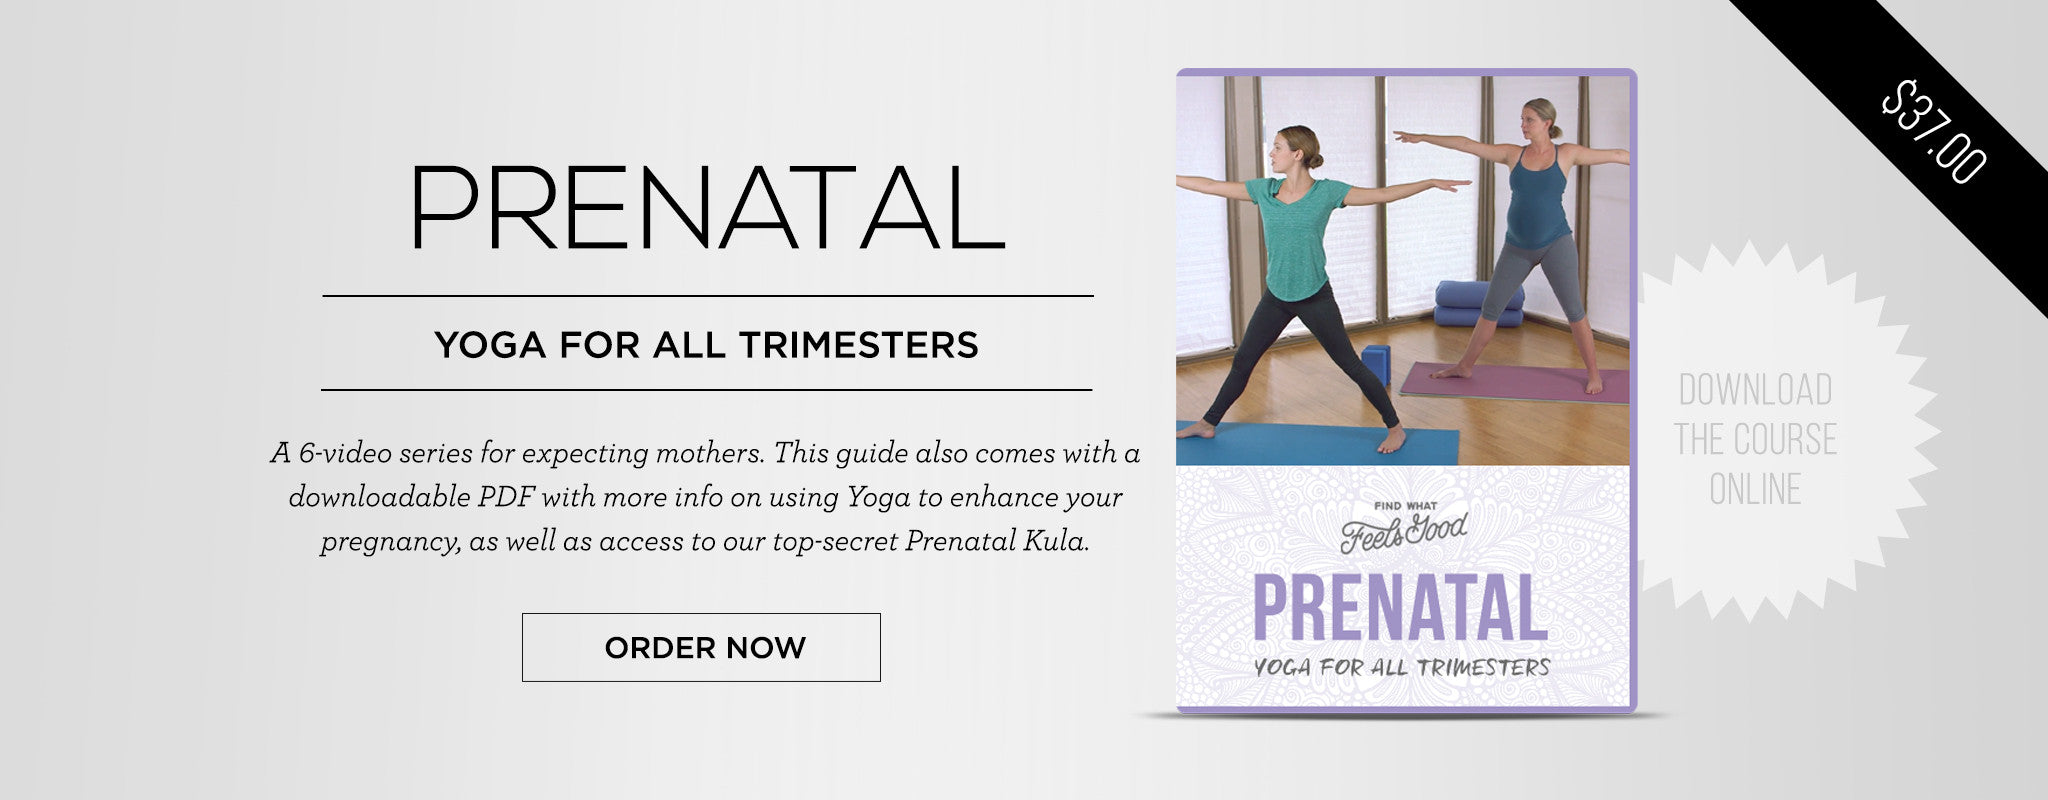 PRENATAL YOGA - Yoga for All Trimesters